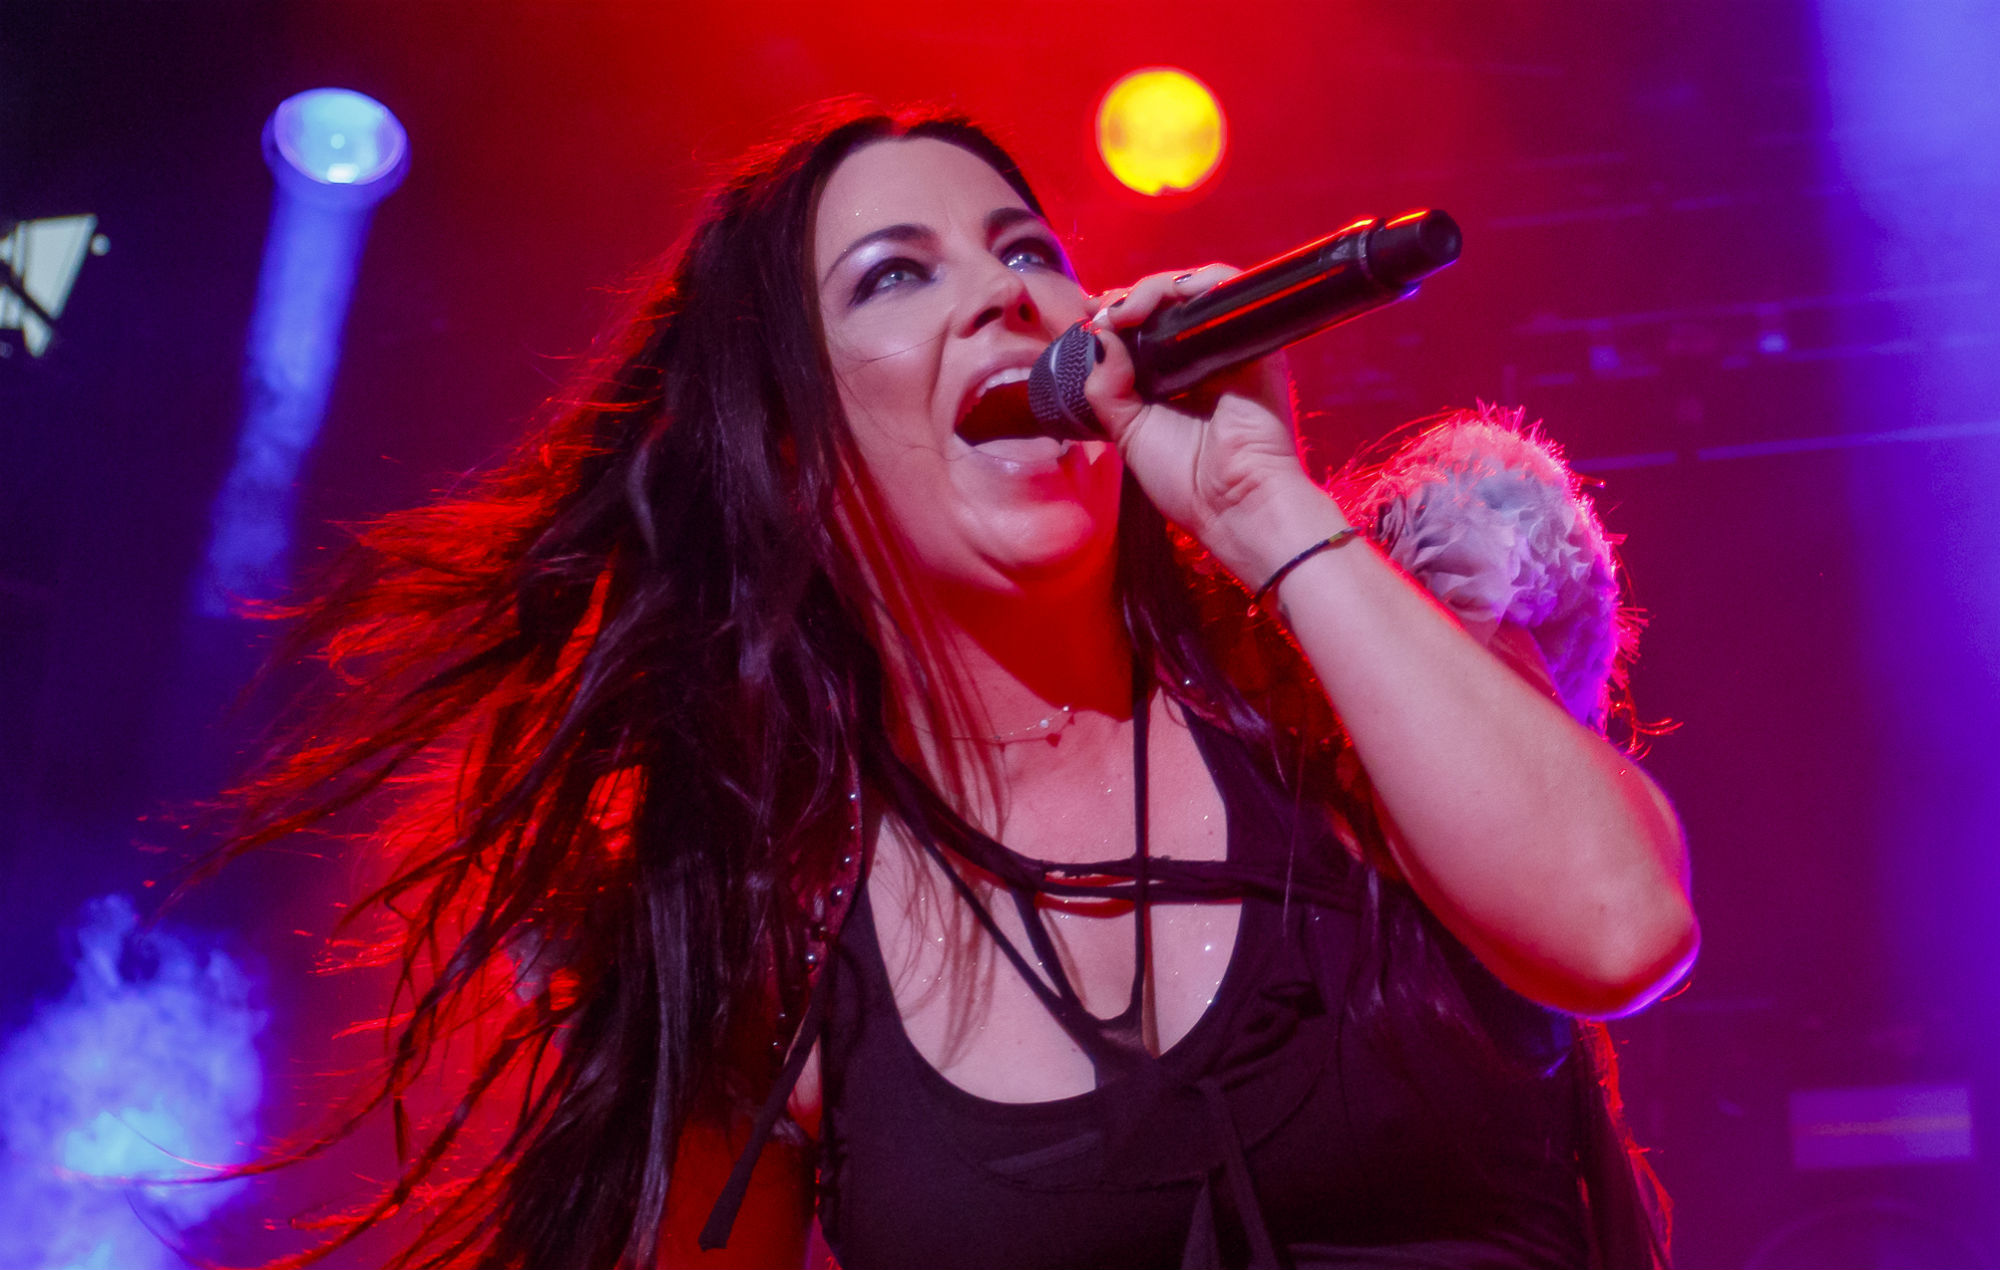 Evanescence's Amy Lee opens up on the lack of women in rock